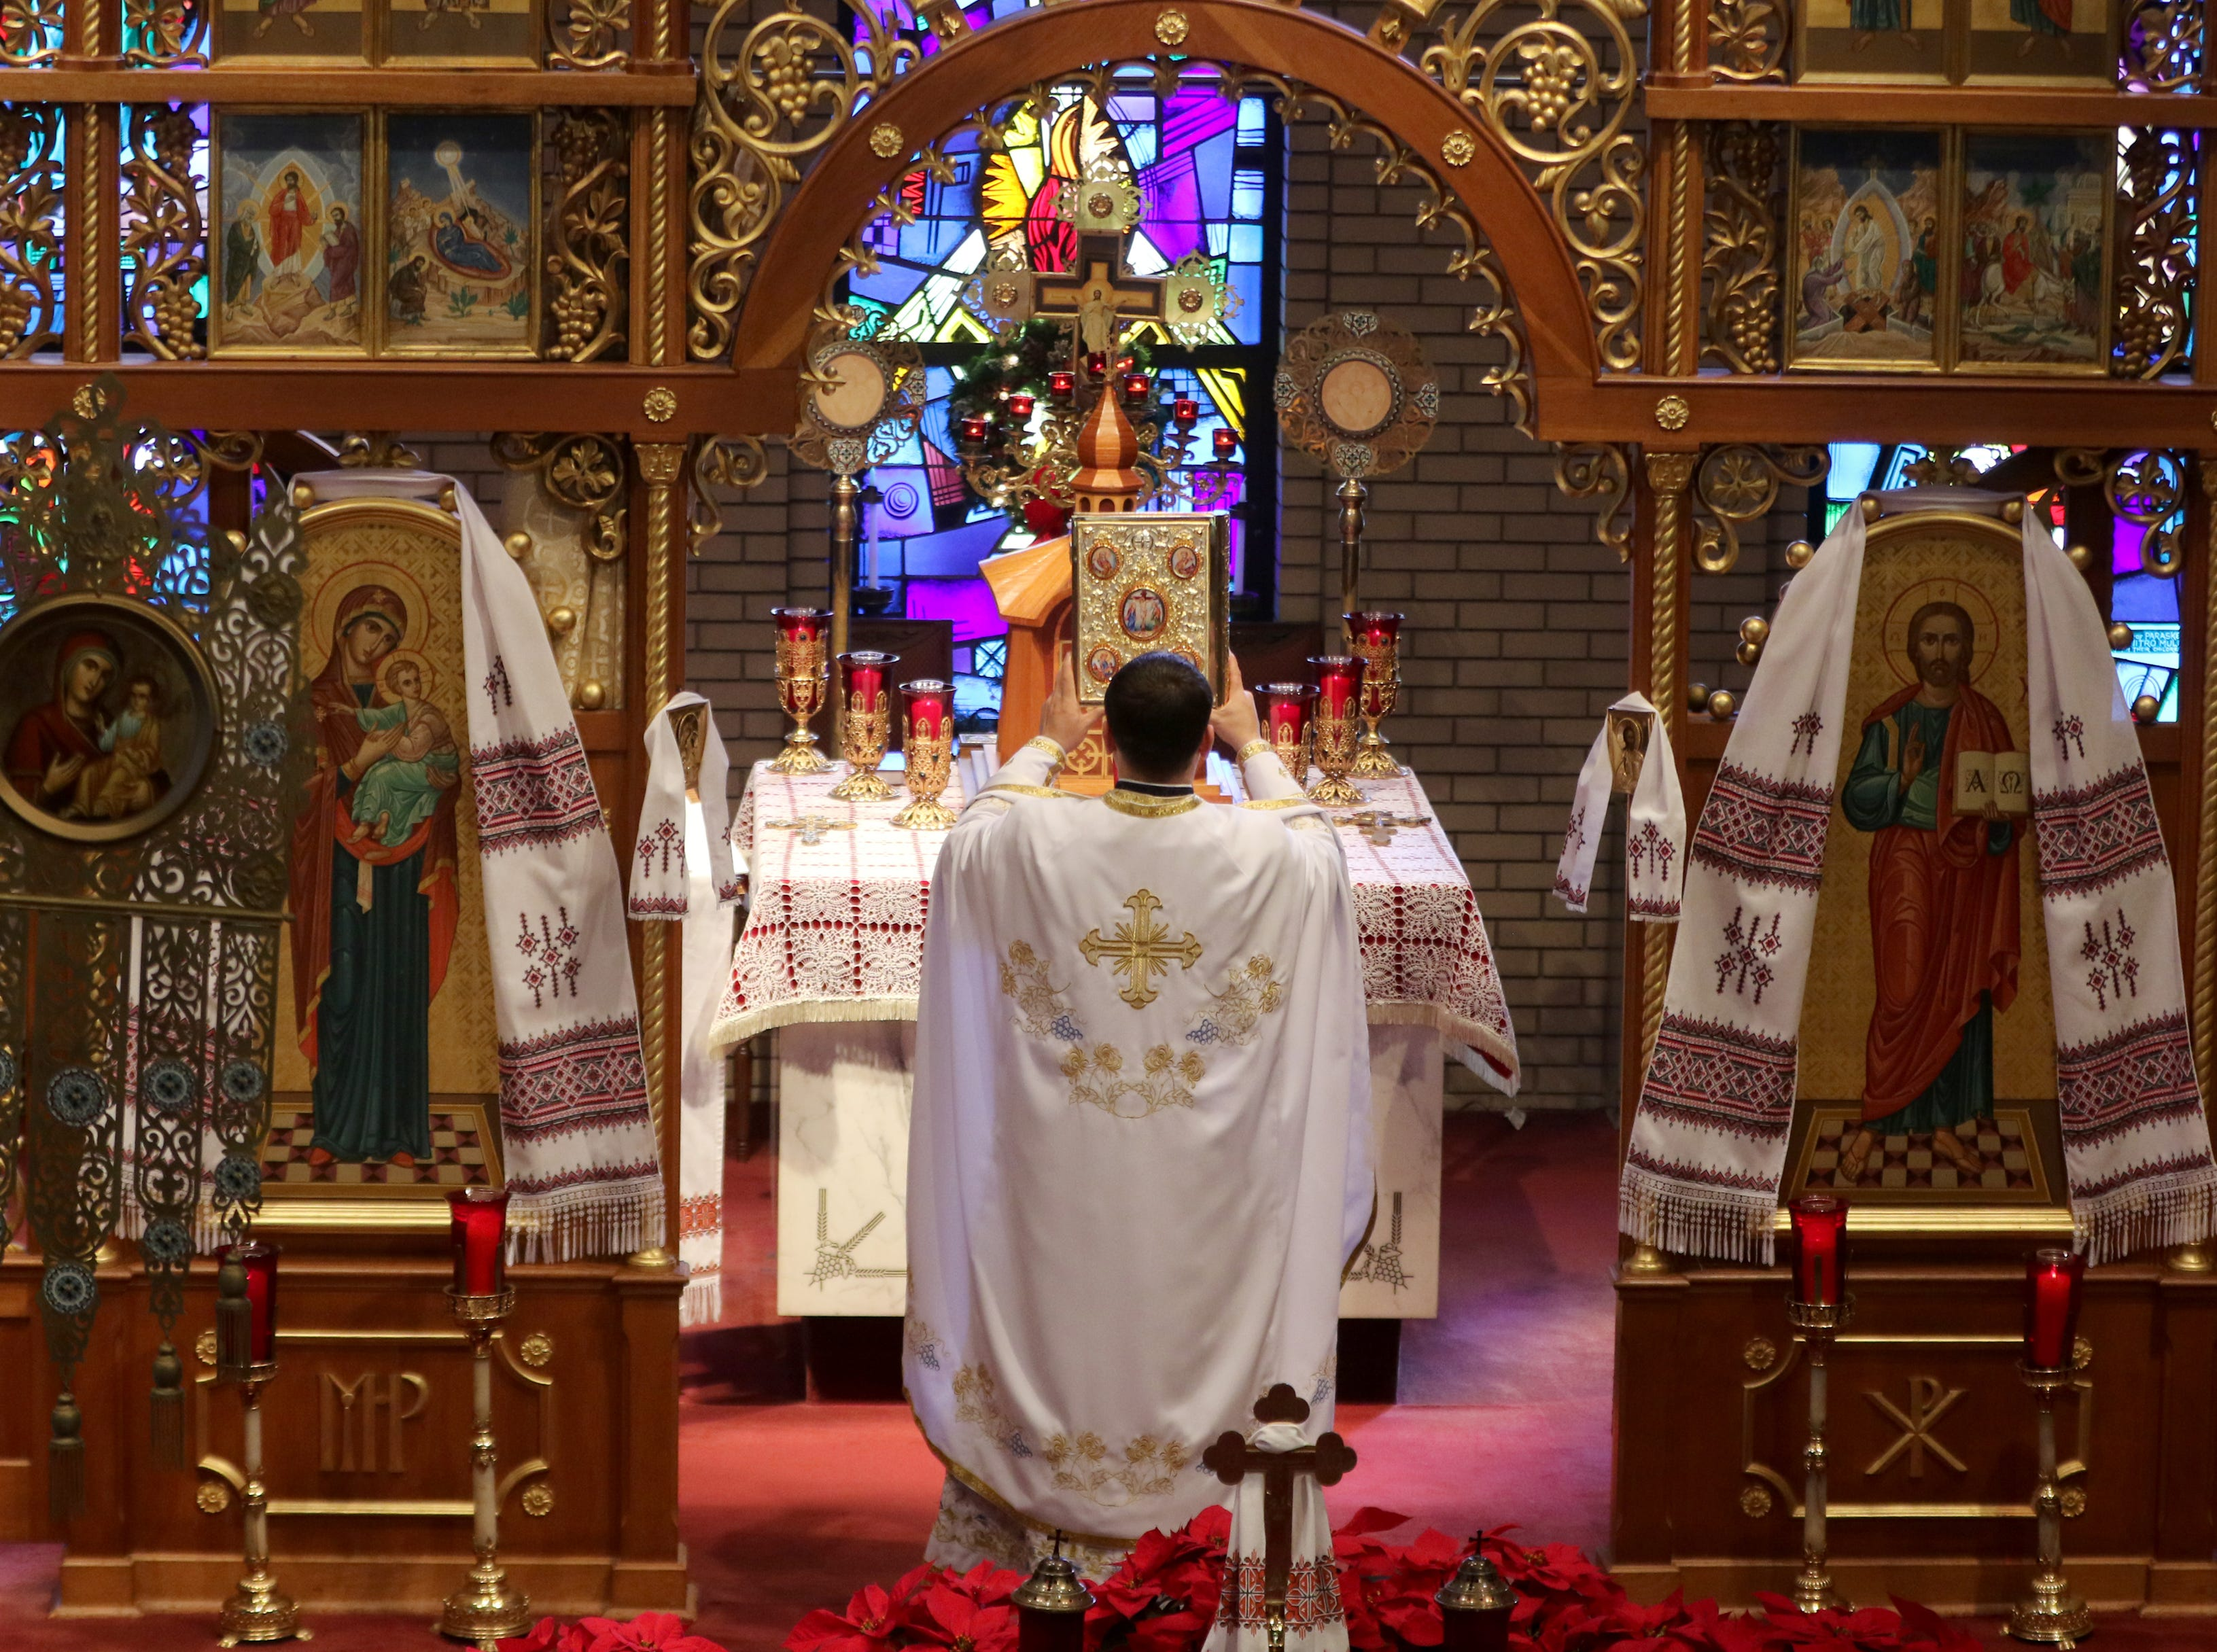 Father Oleksii Holchuk, leads the Divine Liturgy service at the Ukrainian Orthodox Holy Ascension Church, in Clifton.  Ukrainian Orthodox, who follow the Julian calendar, celebrated their first Christmas independently from the Russian church.  Monday, January 7, 2019